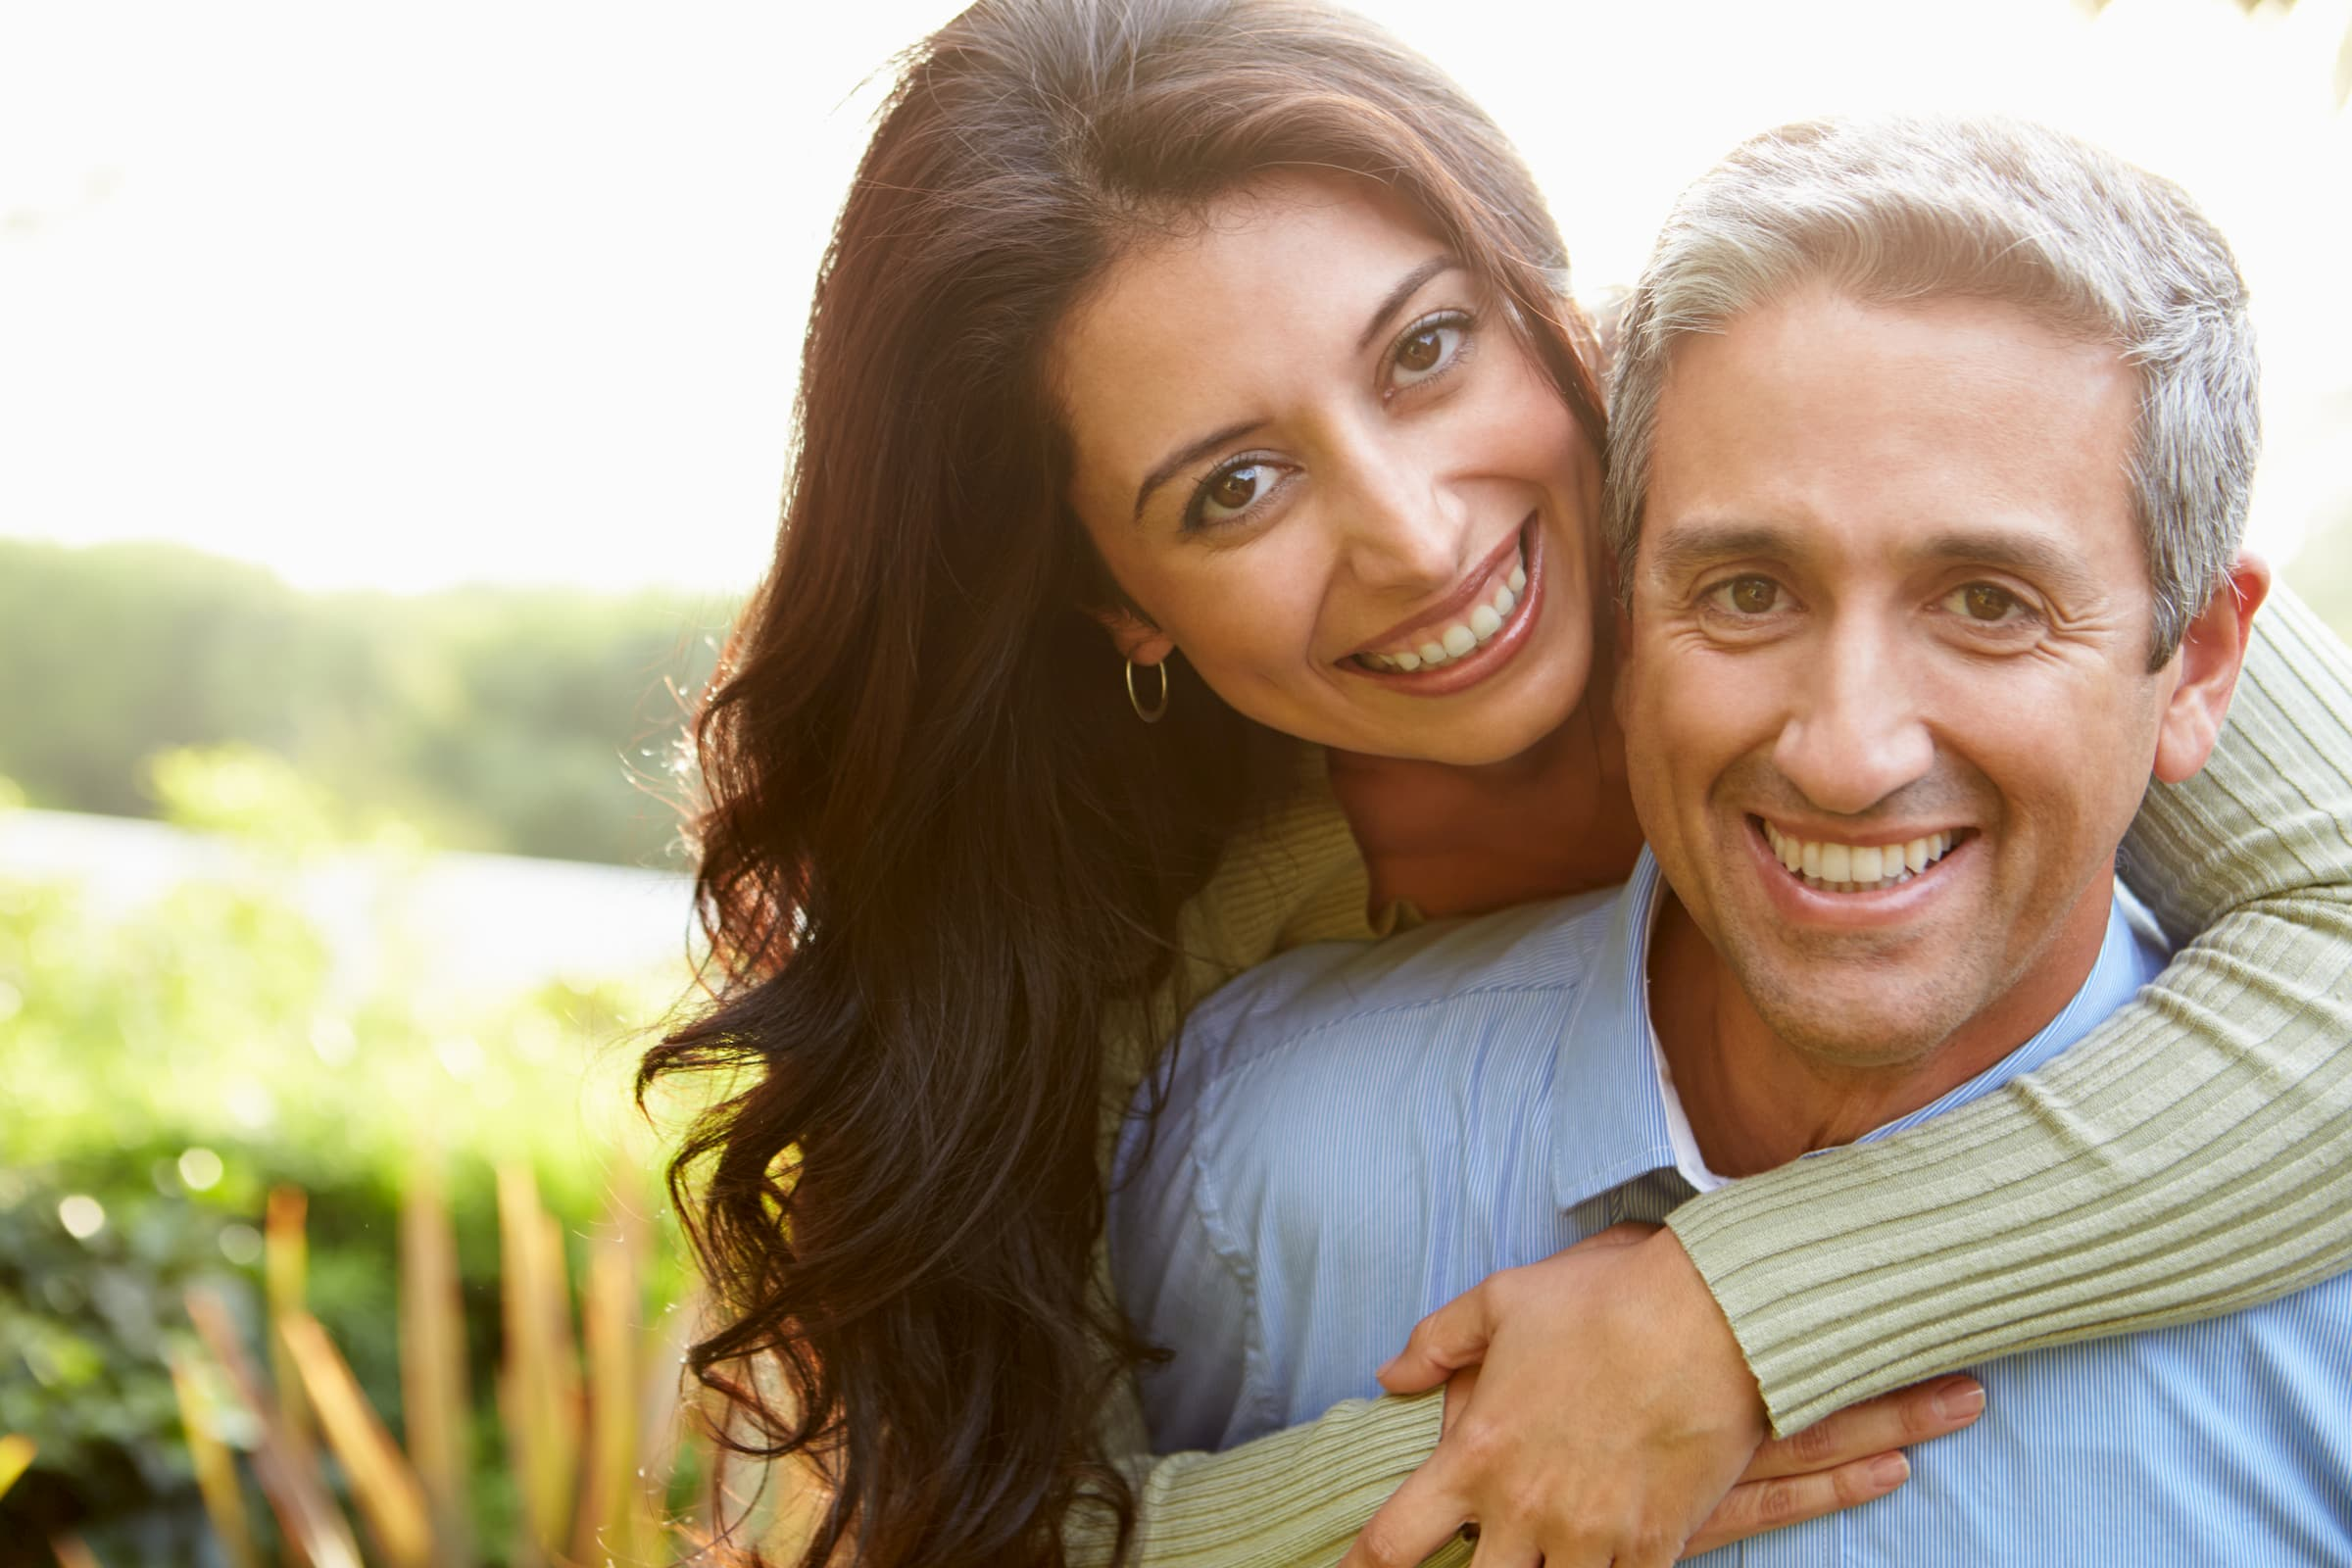 hispanic couple smiling while standing outside woman on man's back